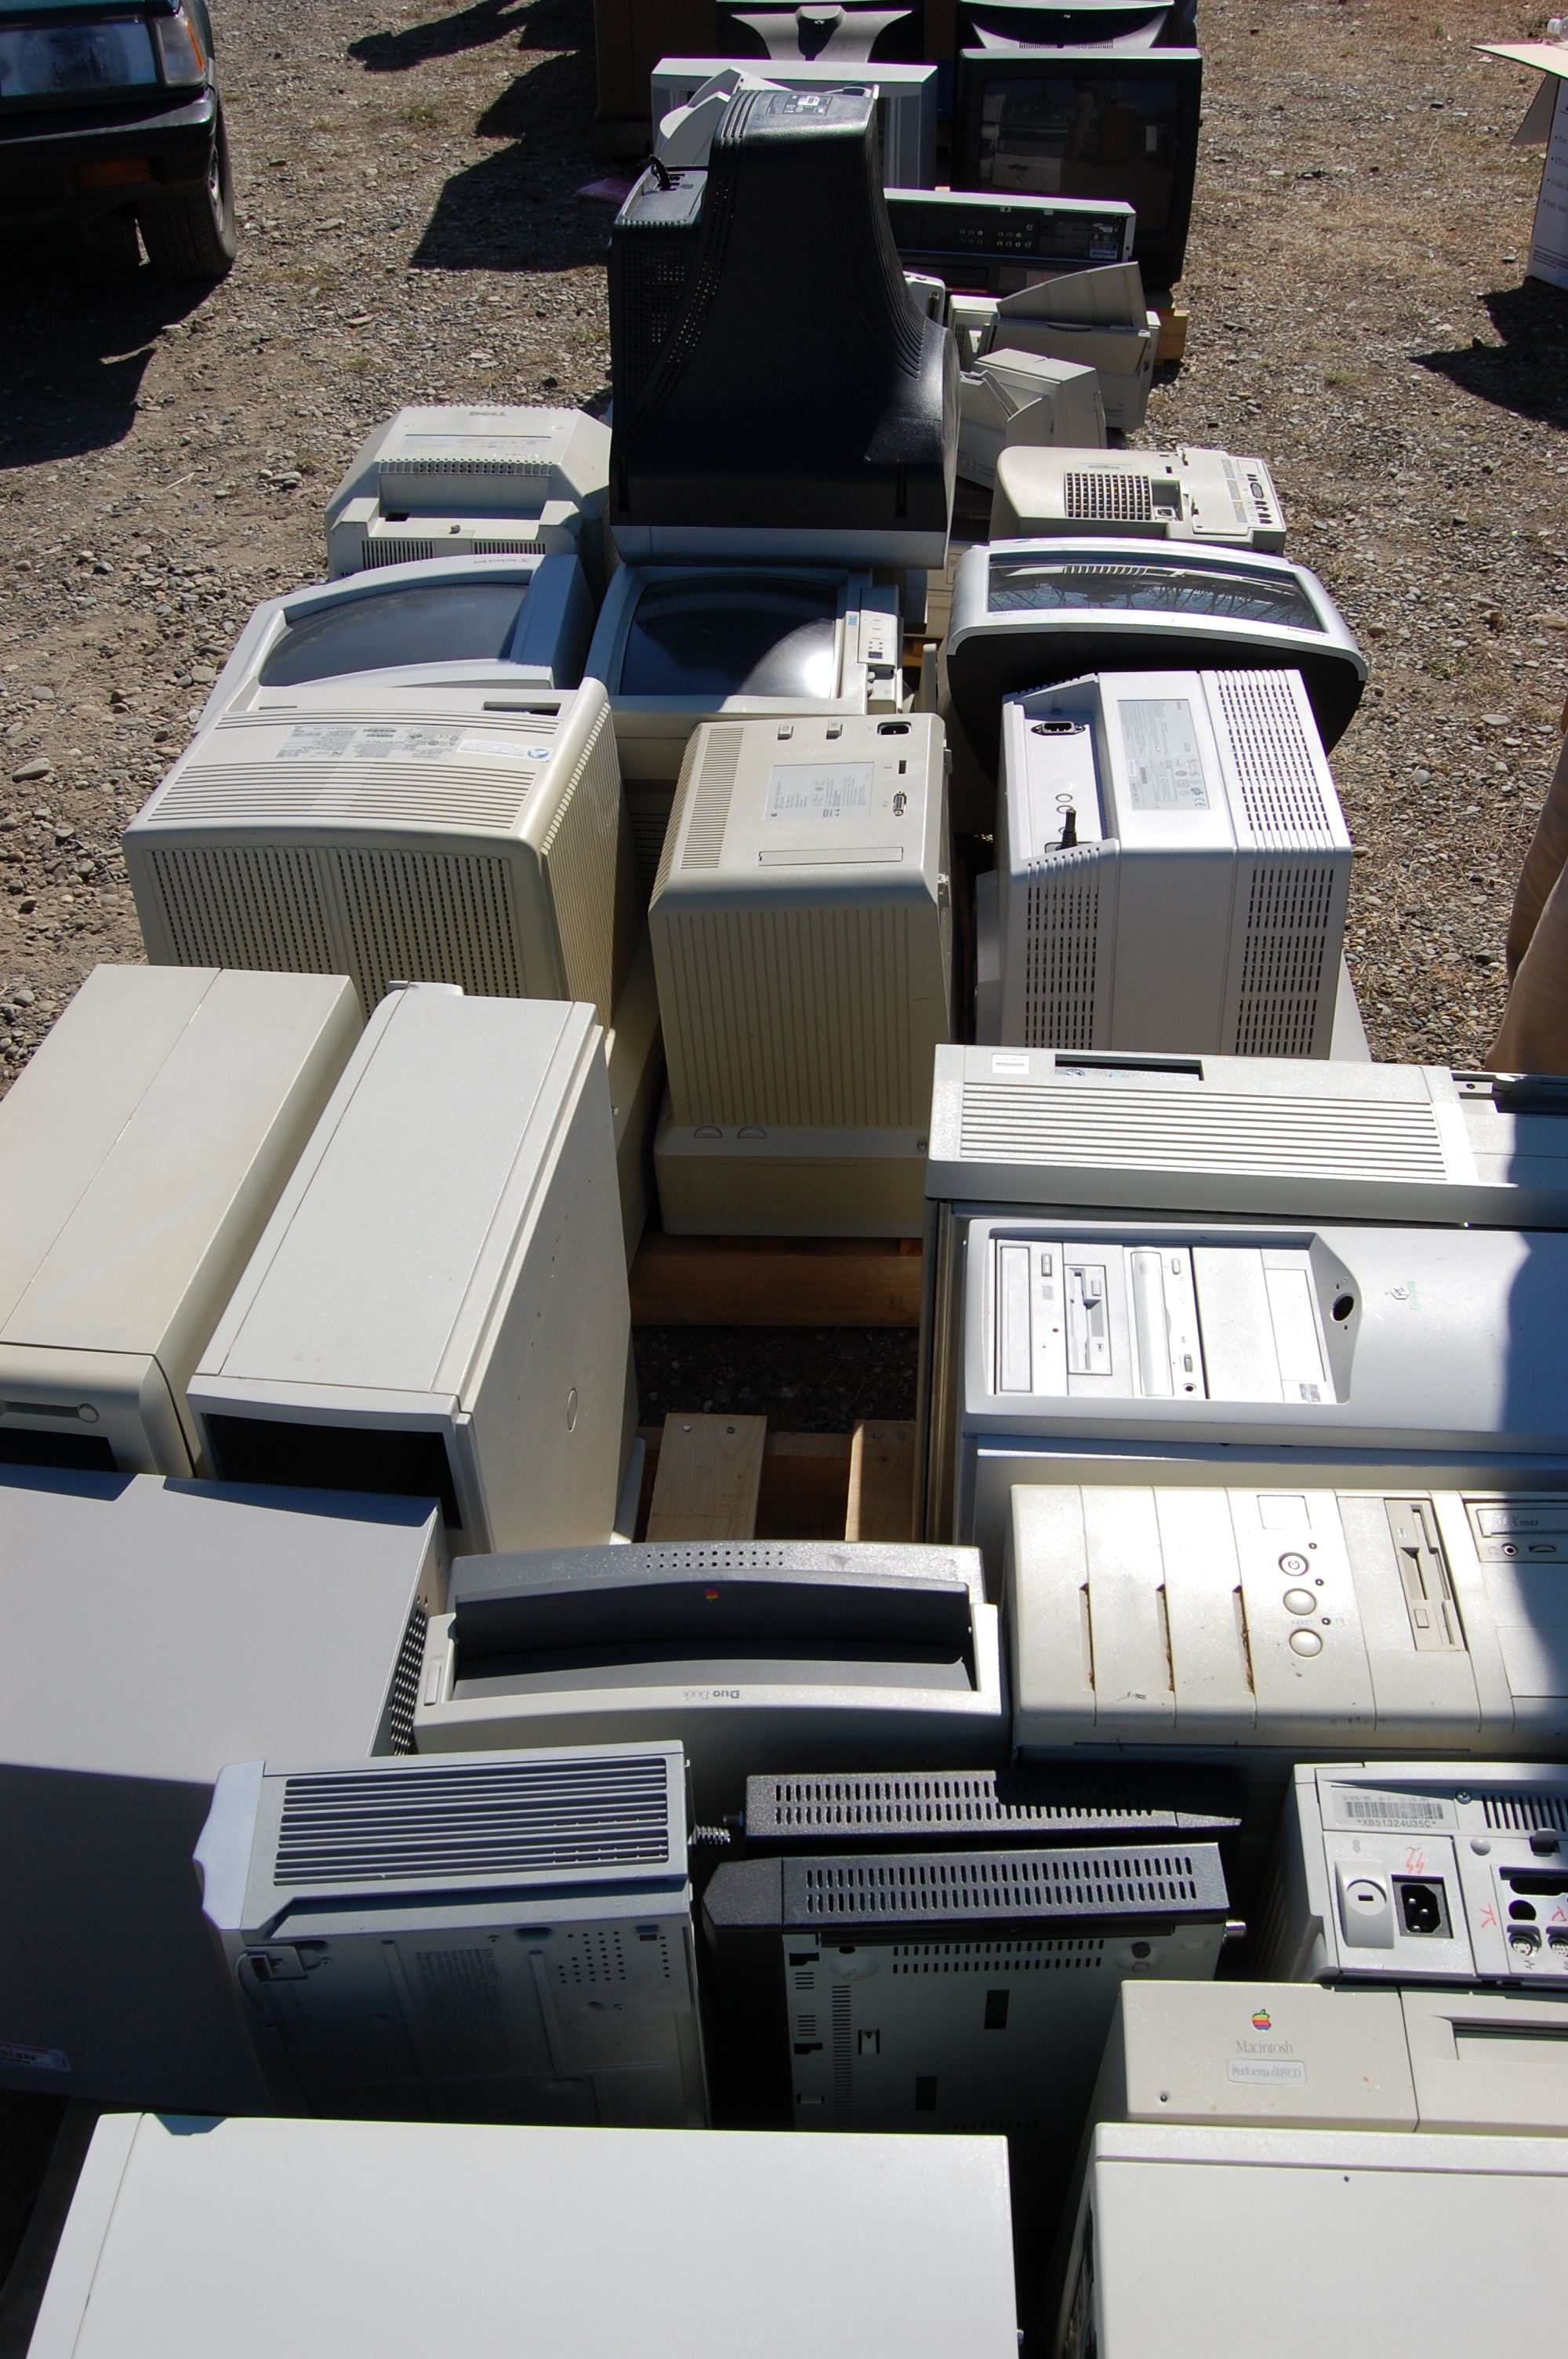 e-waste recycling of computer towers